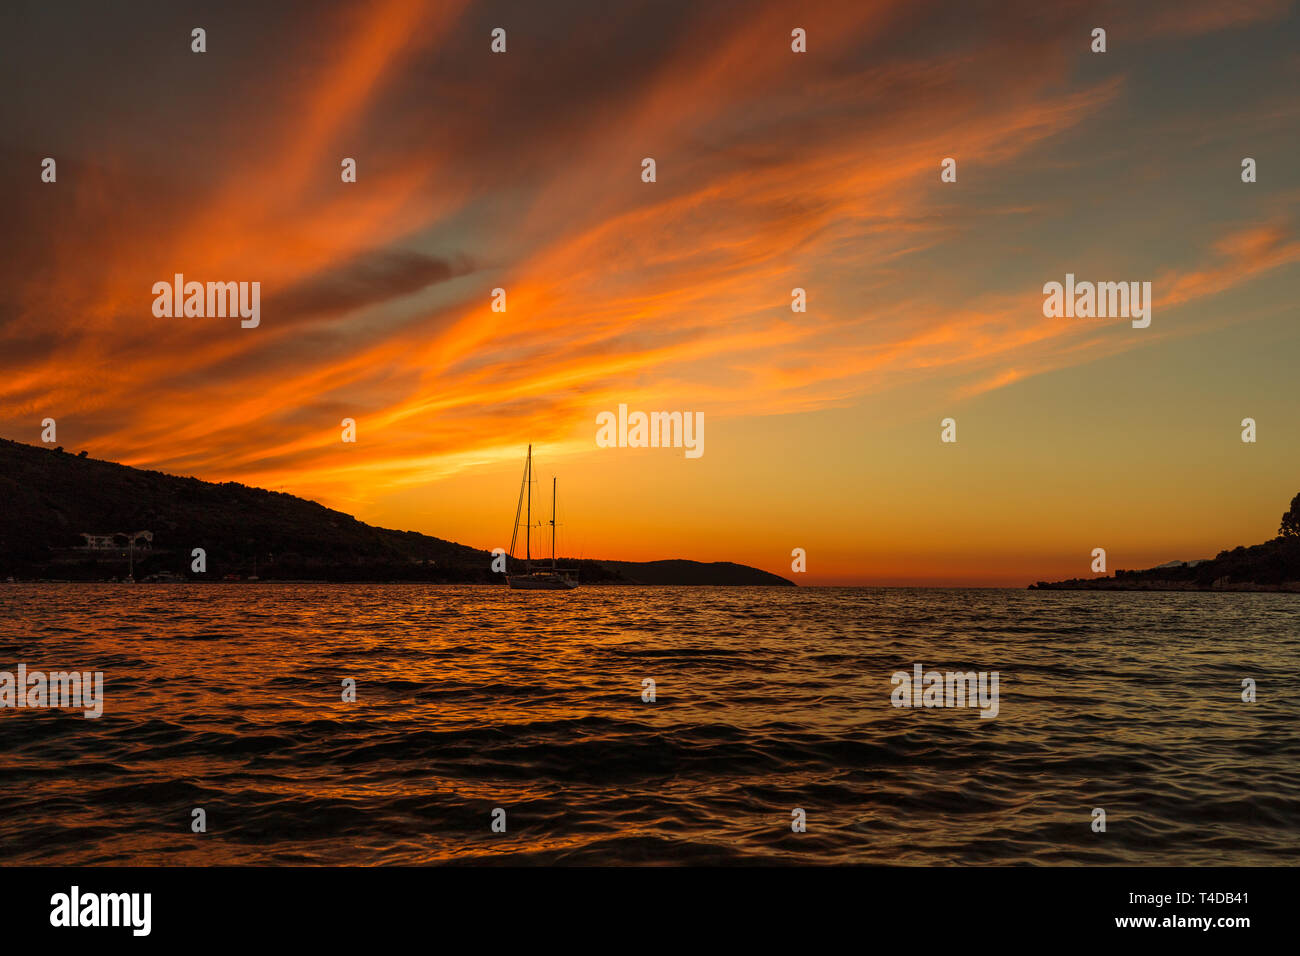 Dramatic red and orange sunset over the sea with mountain range background and yacht on the water (Kassiopi, Corfu, Greece, Europe) Stock Photo